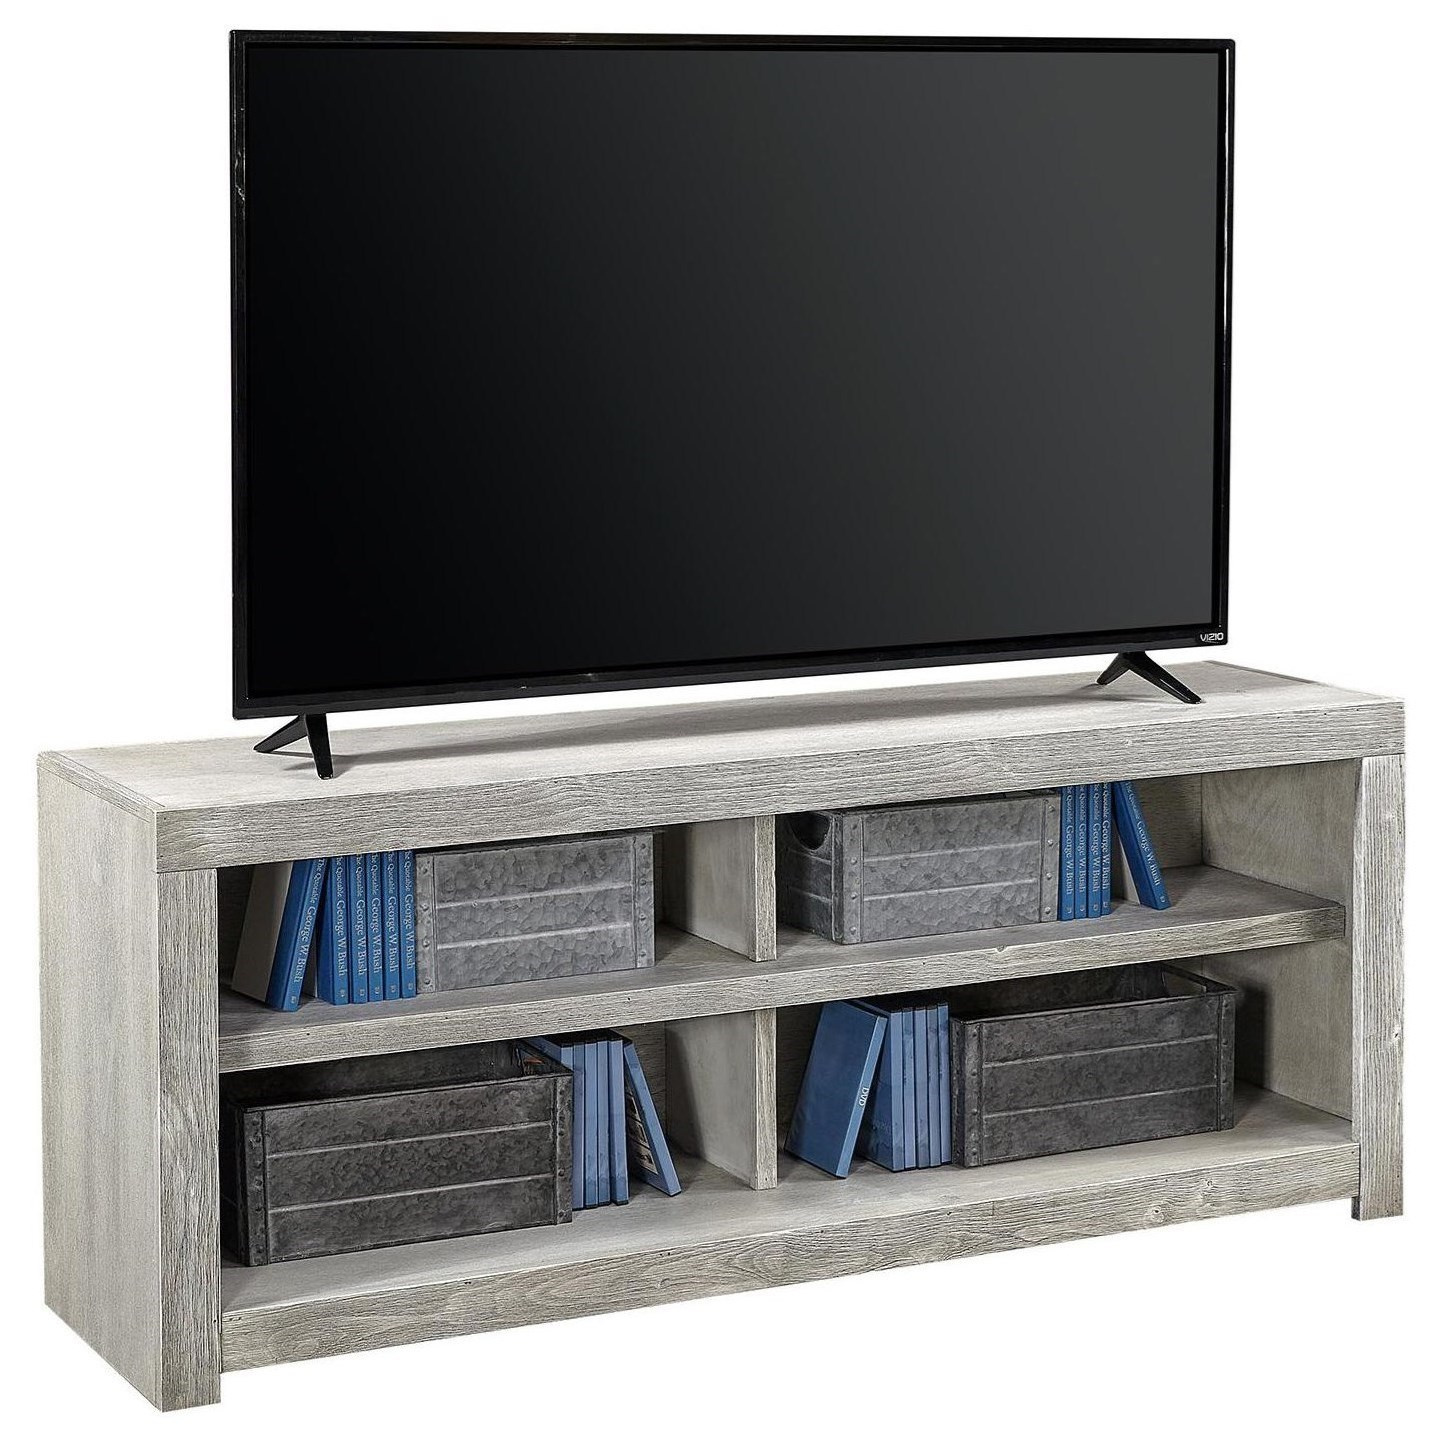 "Avery Loft 60"" TV Console by Aspenhome at HomeWorld Furniture"